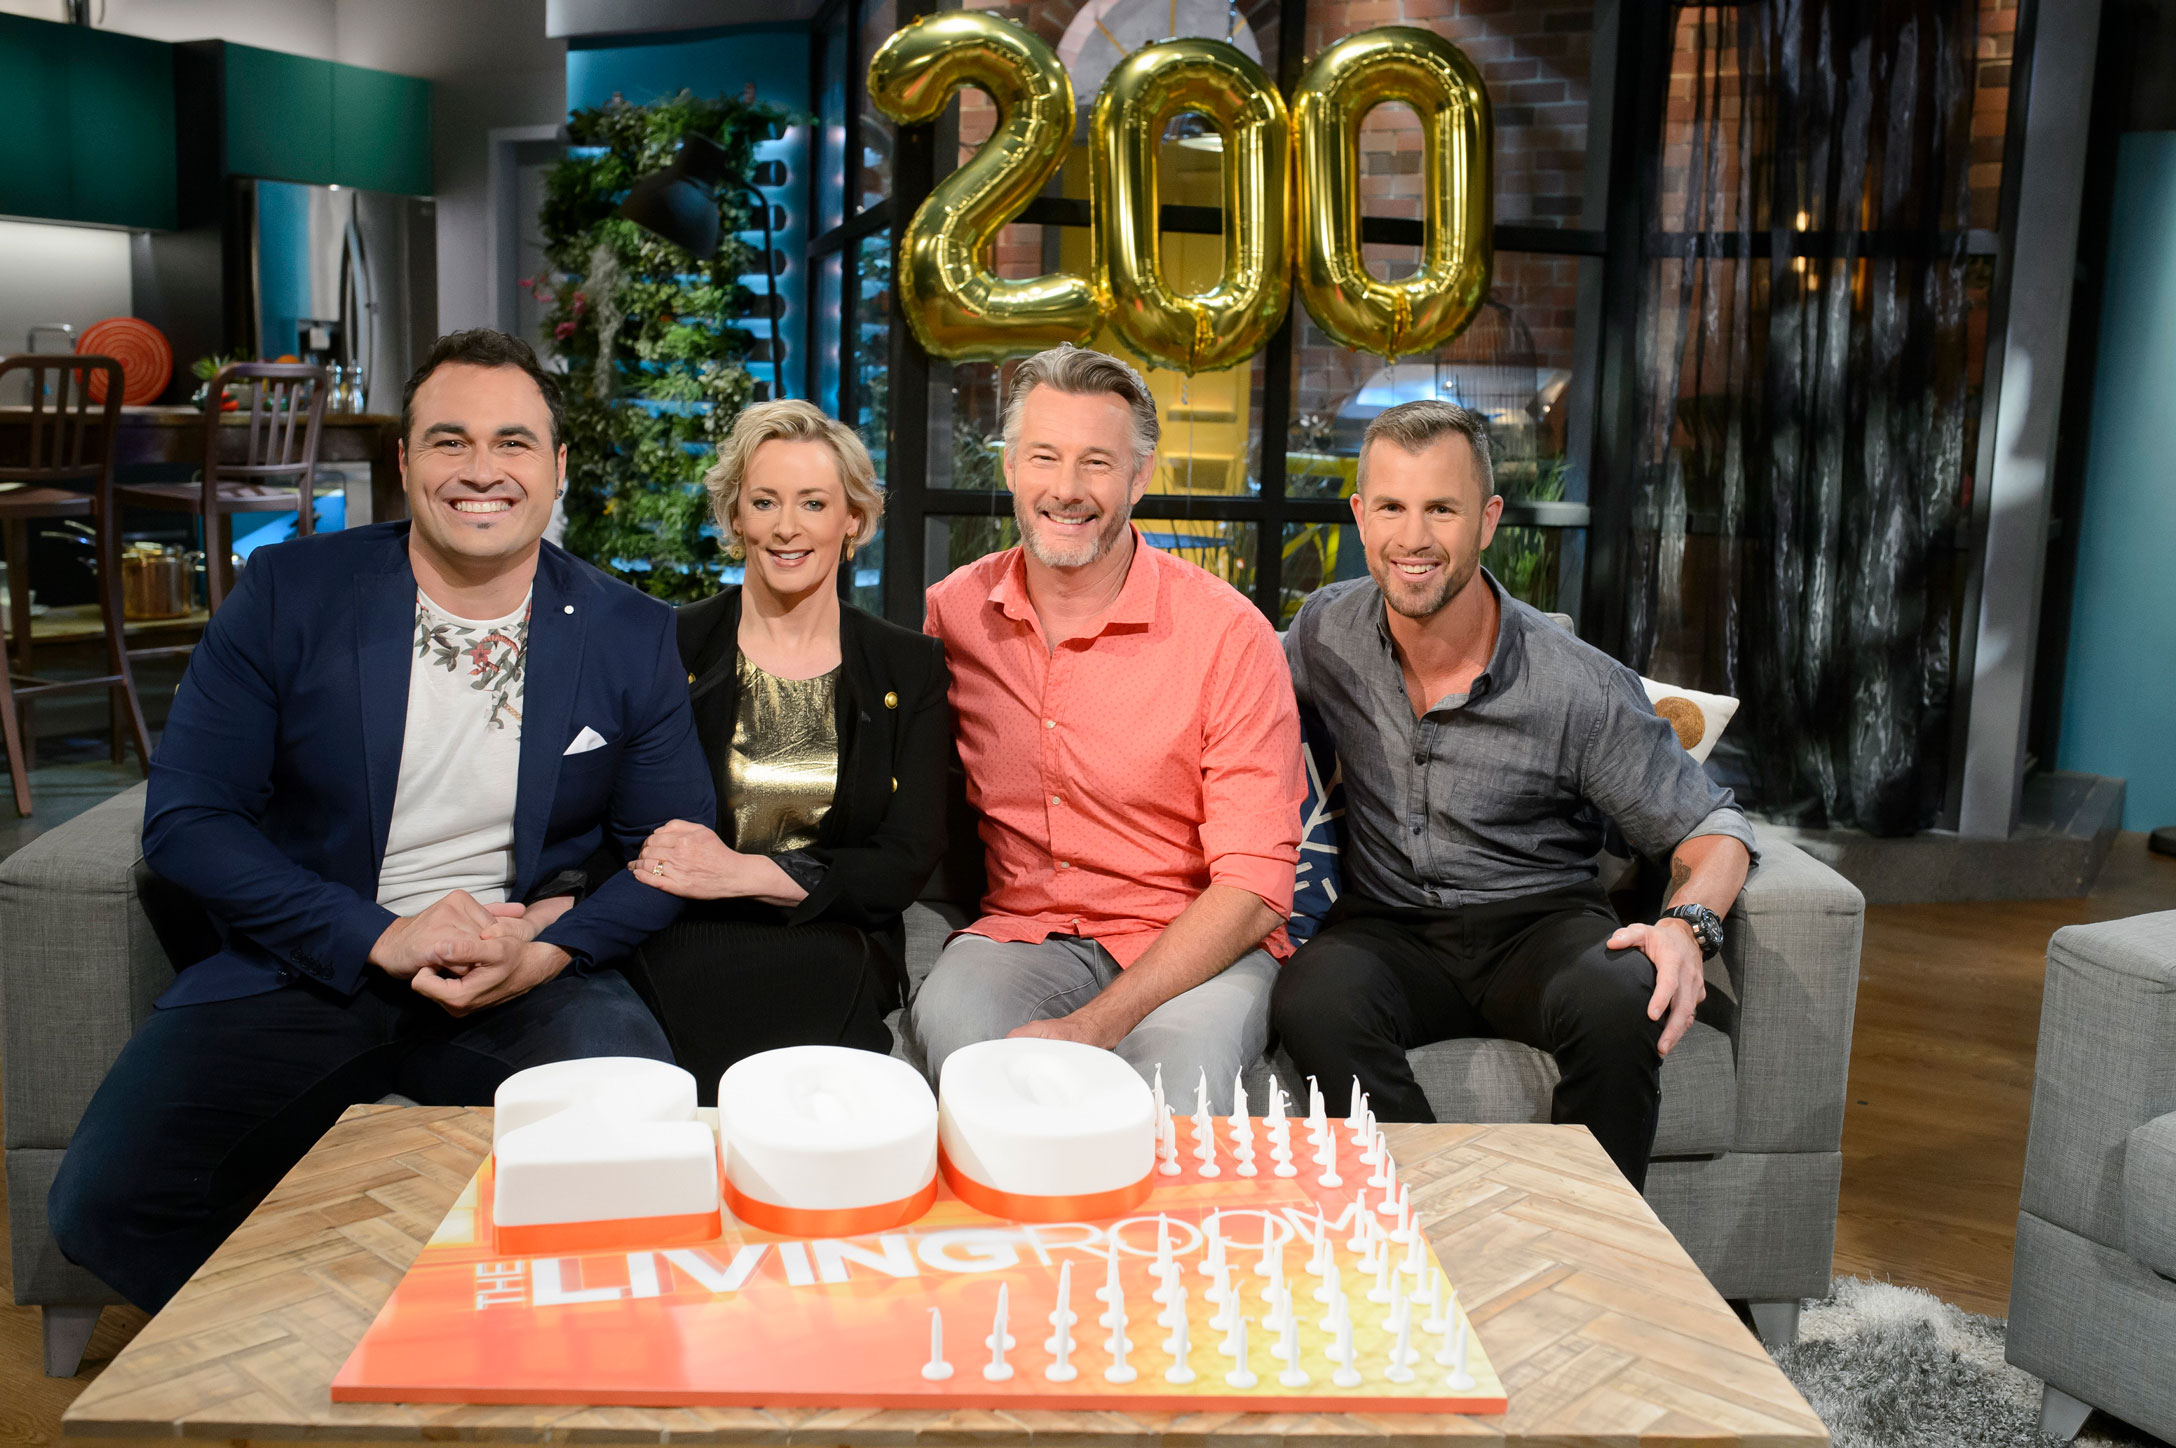 the-living-room-200th-episode-Miguel-Amanda-Barry-Shannan-2176x1448